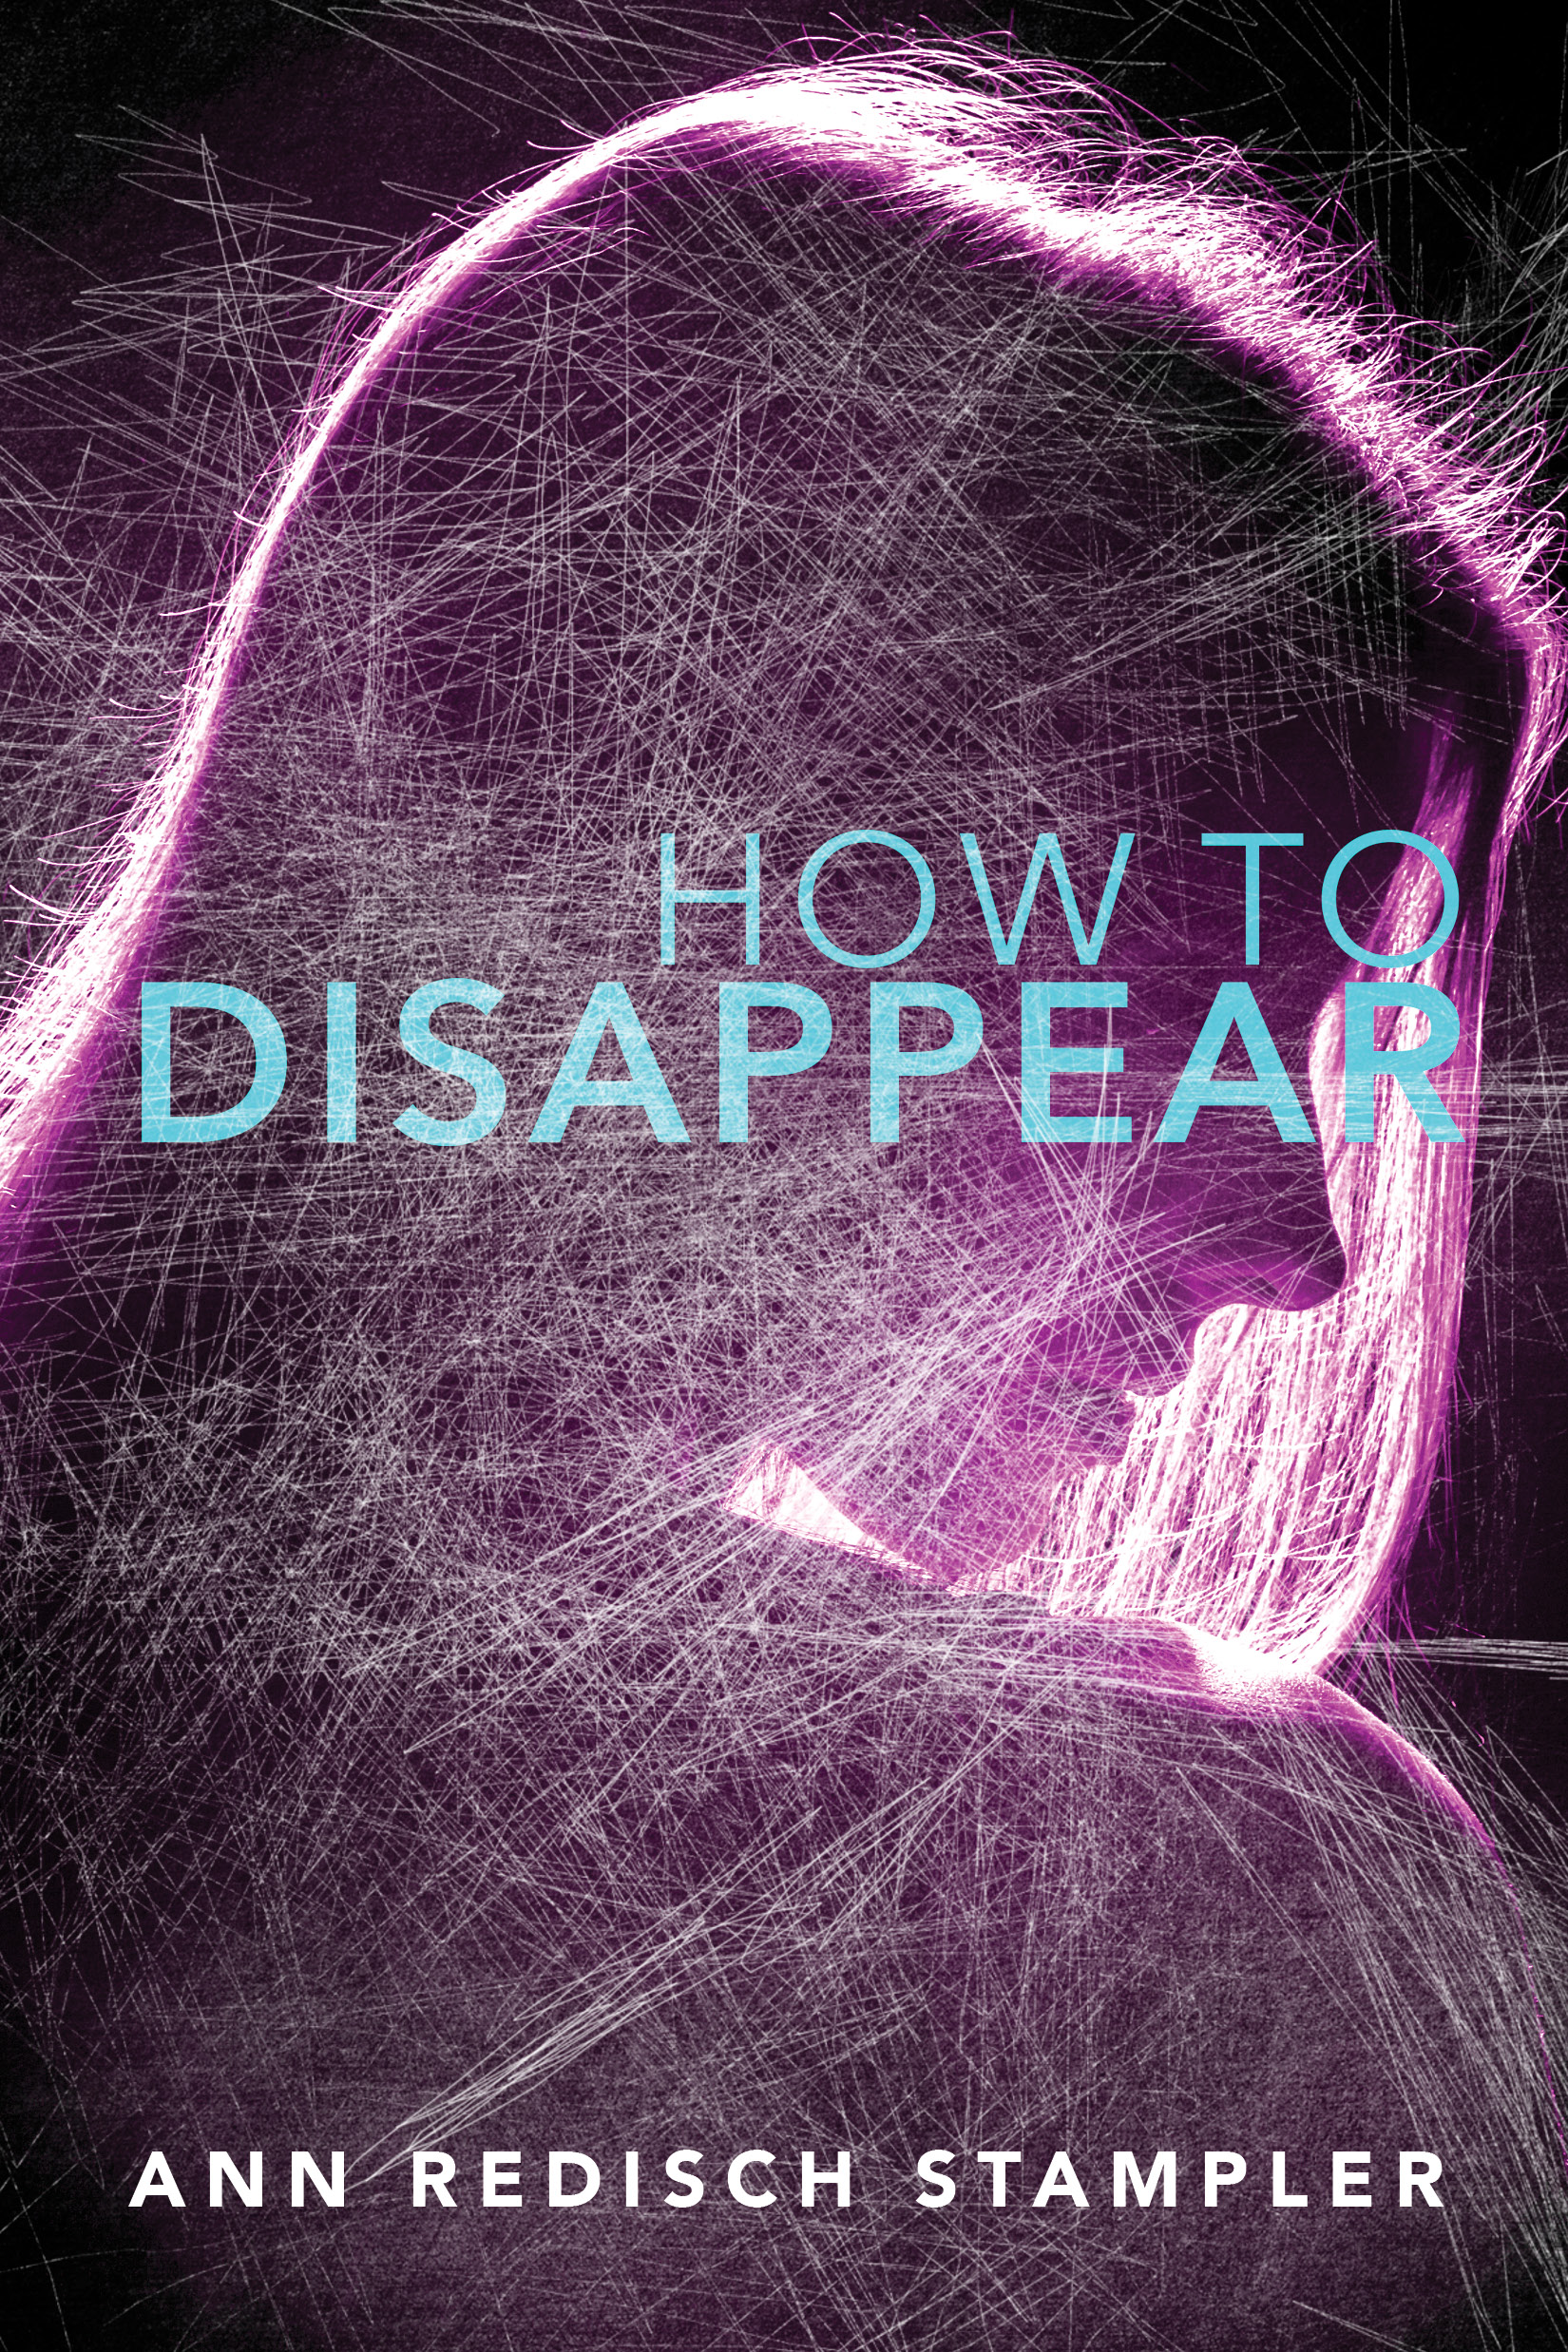 howtodisappear_rev5